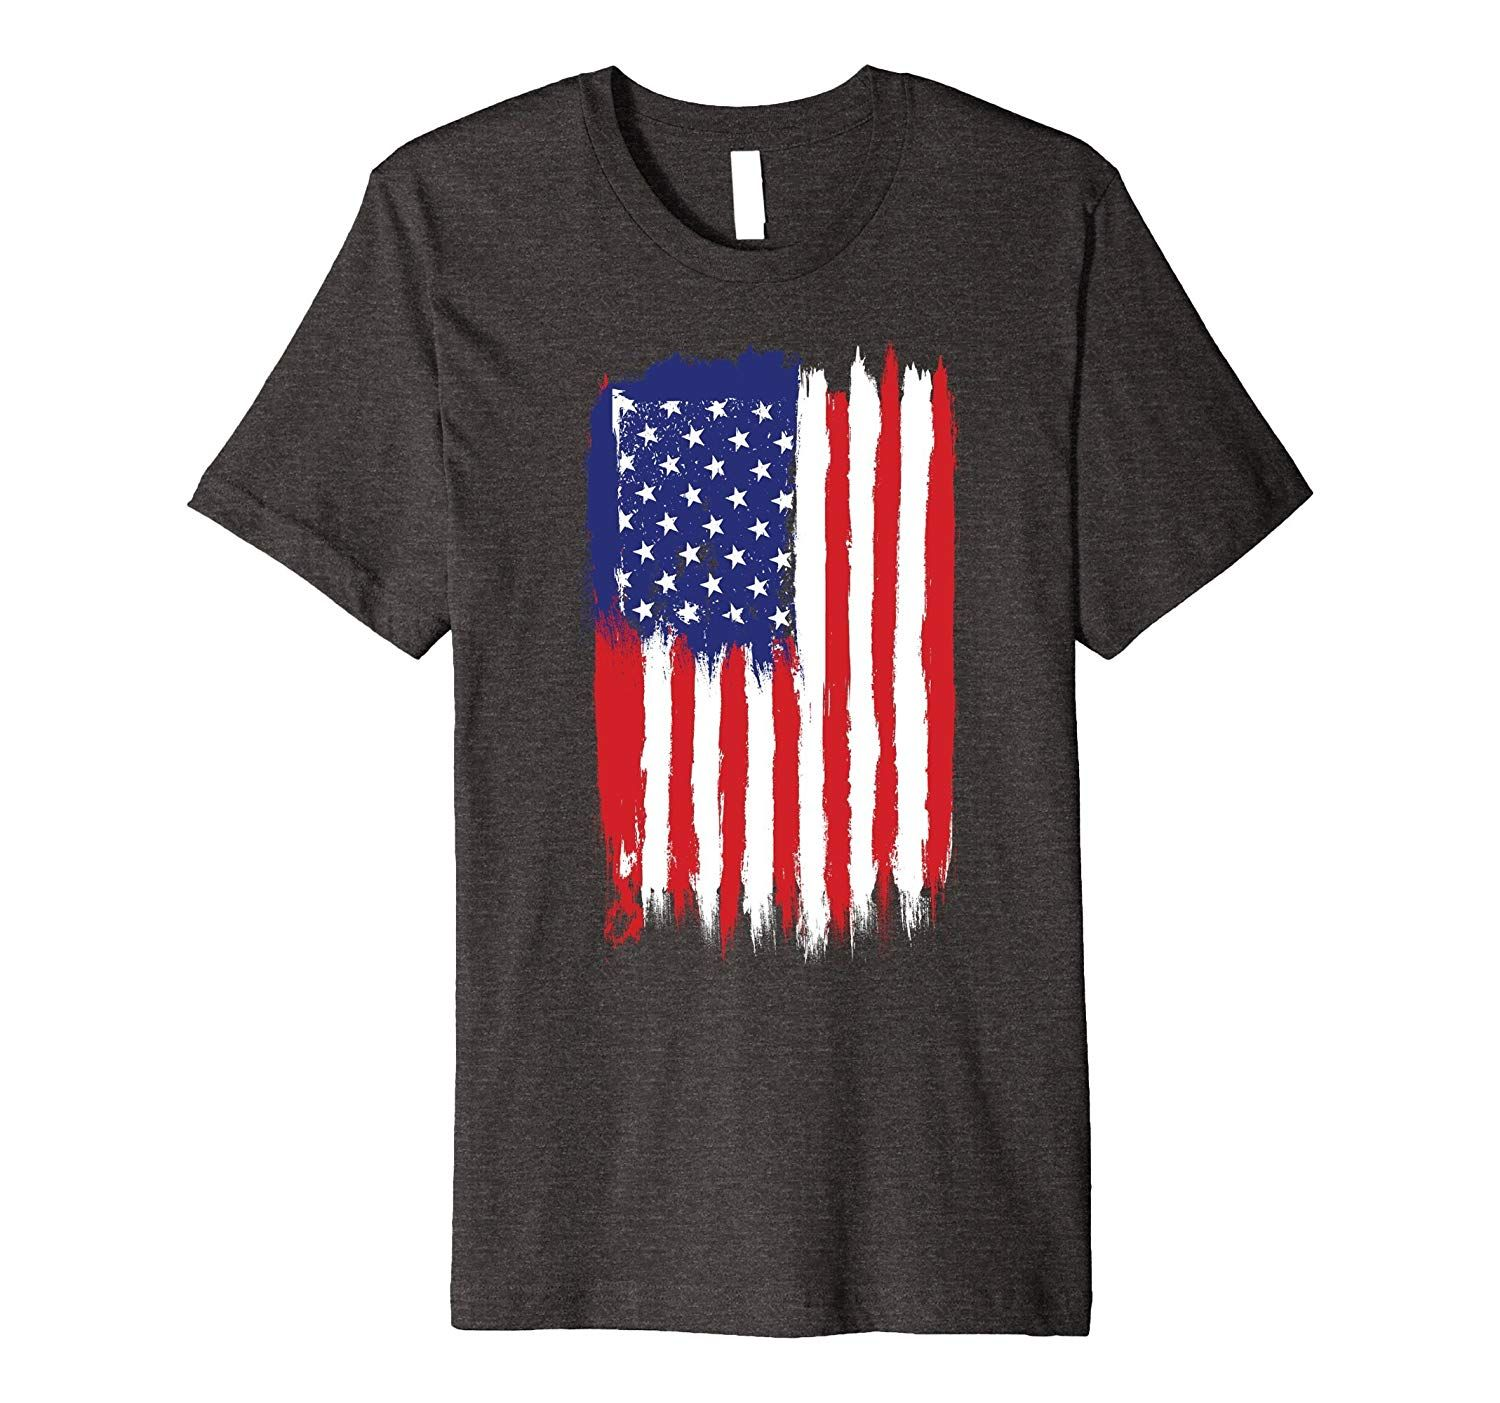 Pin By Lyra Tee On T Shirt Ideas For The Holidays In 2020 Patriotic Shirts Mens Patriotic Shirts Patriotic Tee Shirts